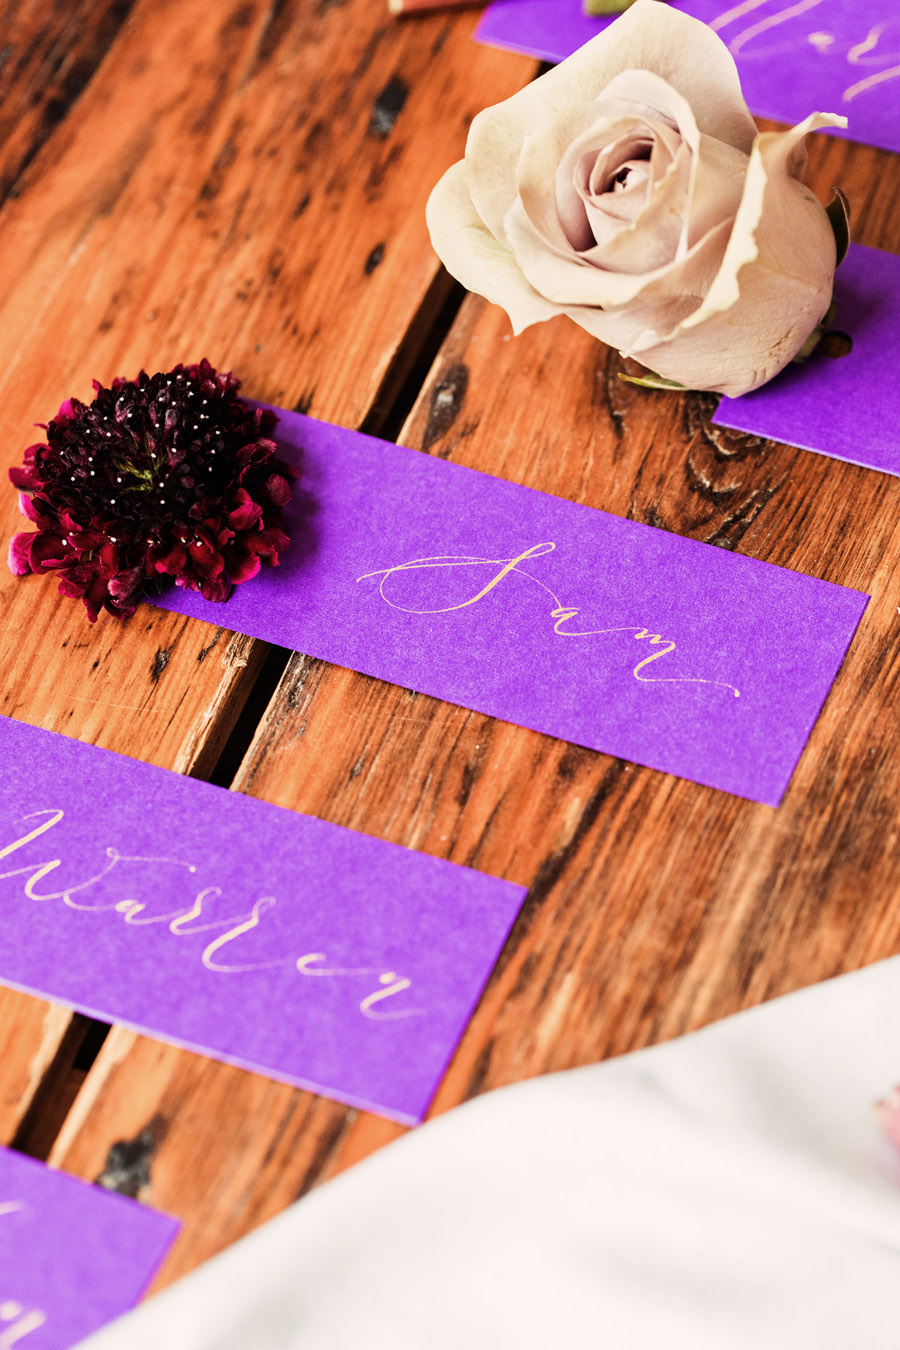 Calligraphy wedding service for place names and more - written by By Moon and Tide Calligraphy - image credit Camilla Lucinda (2)